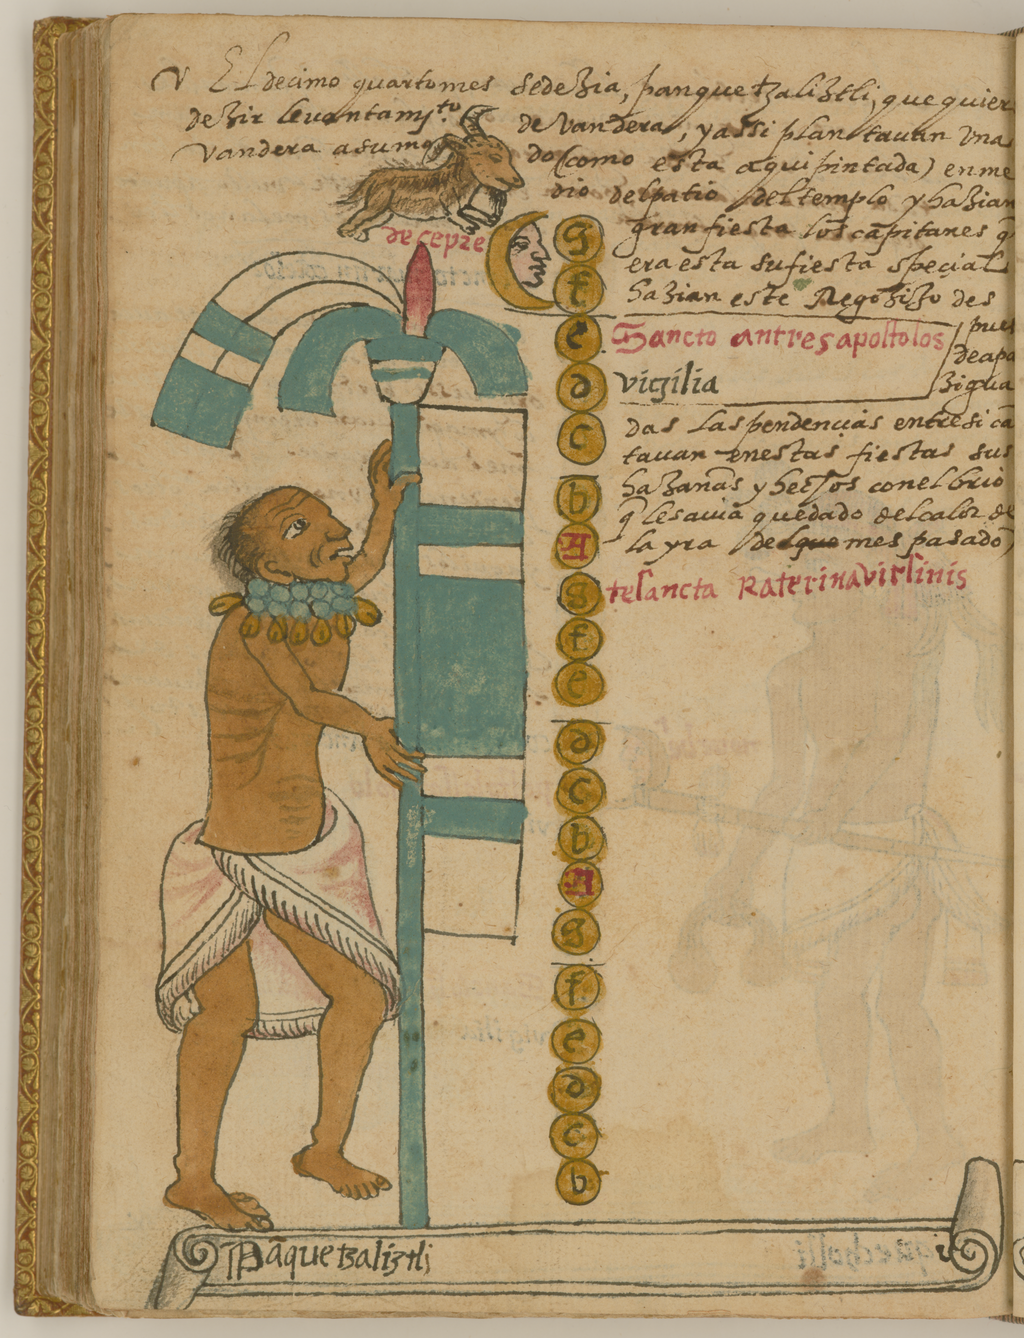 File:Panquetzaliztli, Banner Raising, the 15th Month of the Aztec